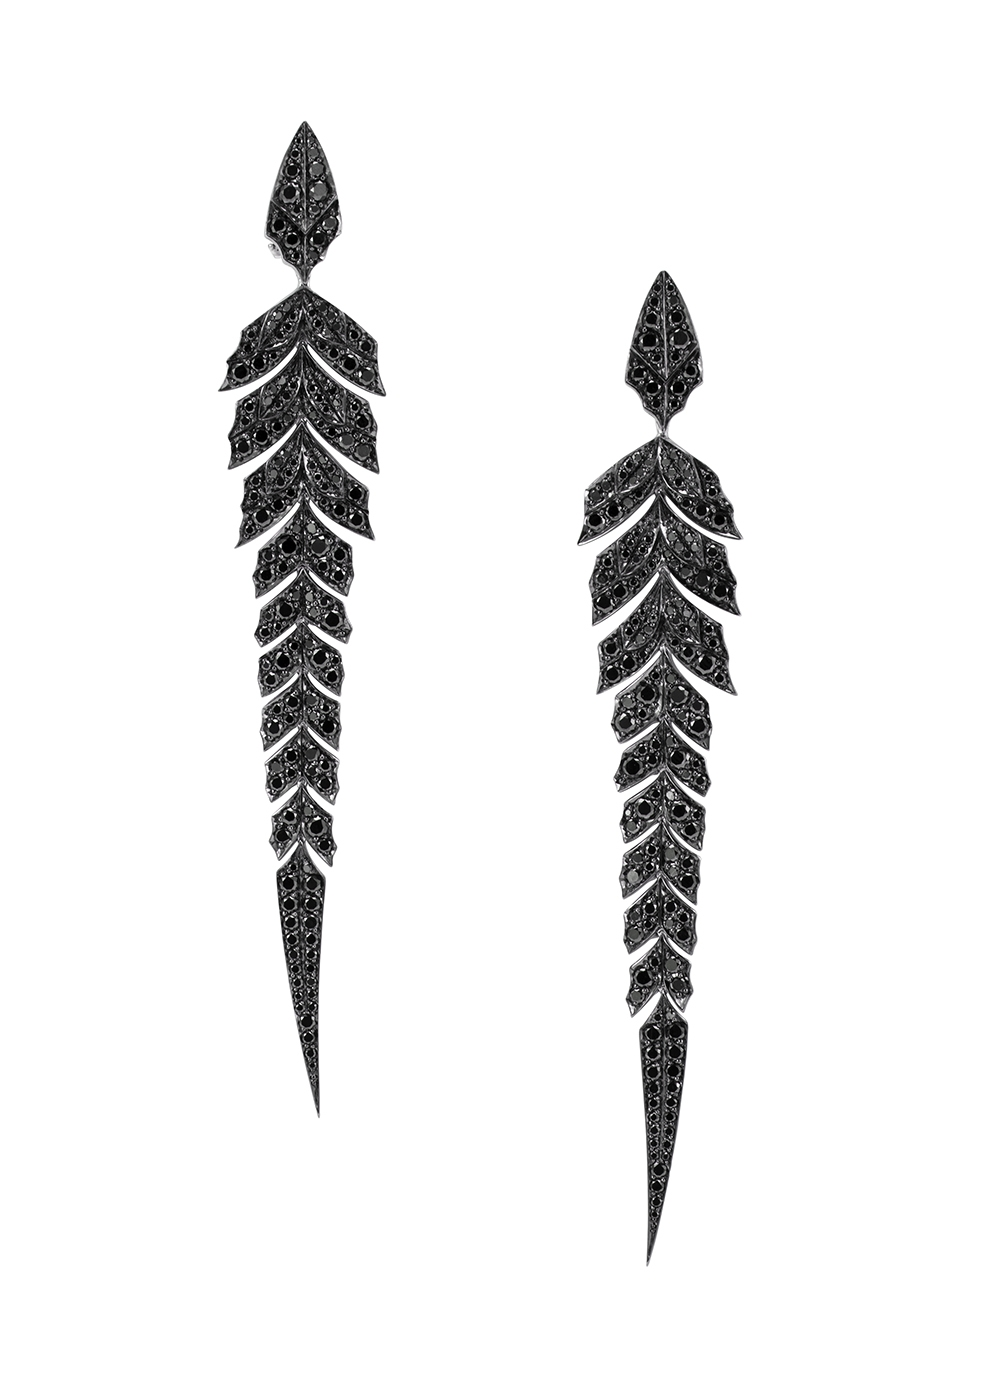 These Stephen Webster drop earrings from the Magnipheasant collection showcase a feather design embellished with black and white diamonds crafted in 18k white gold.